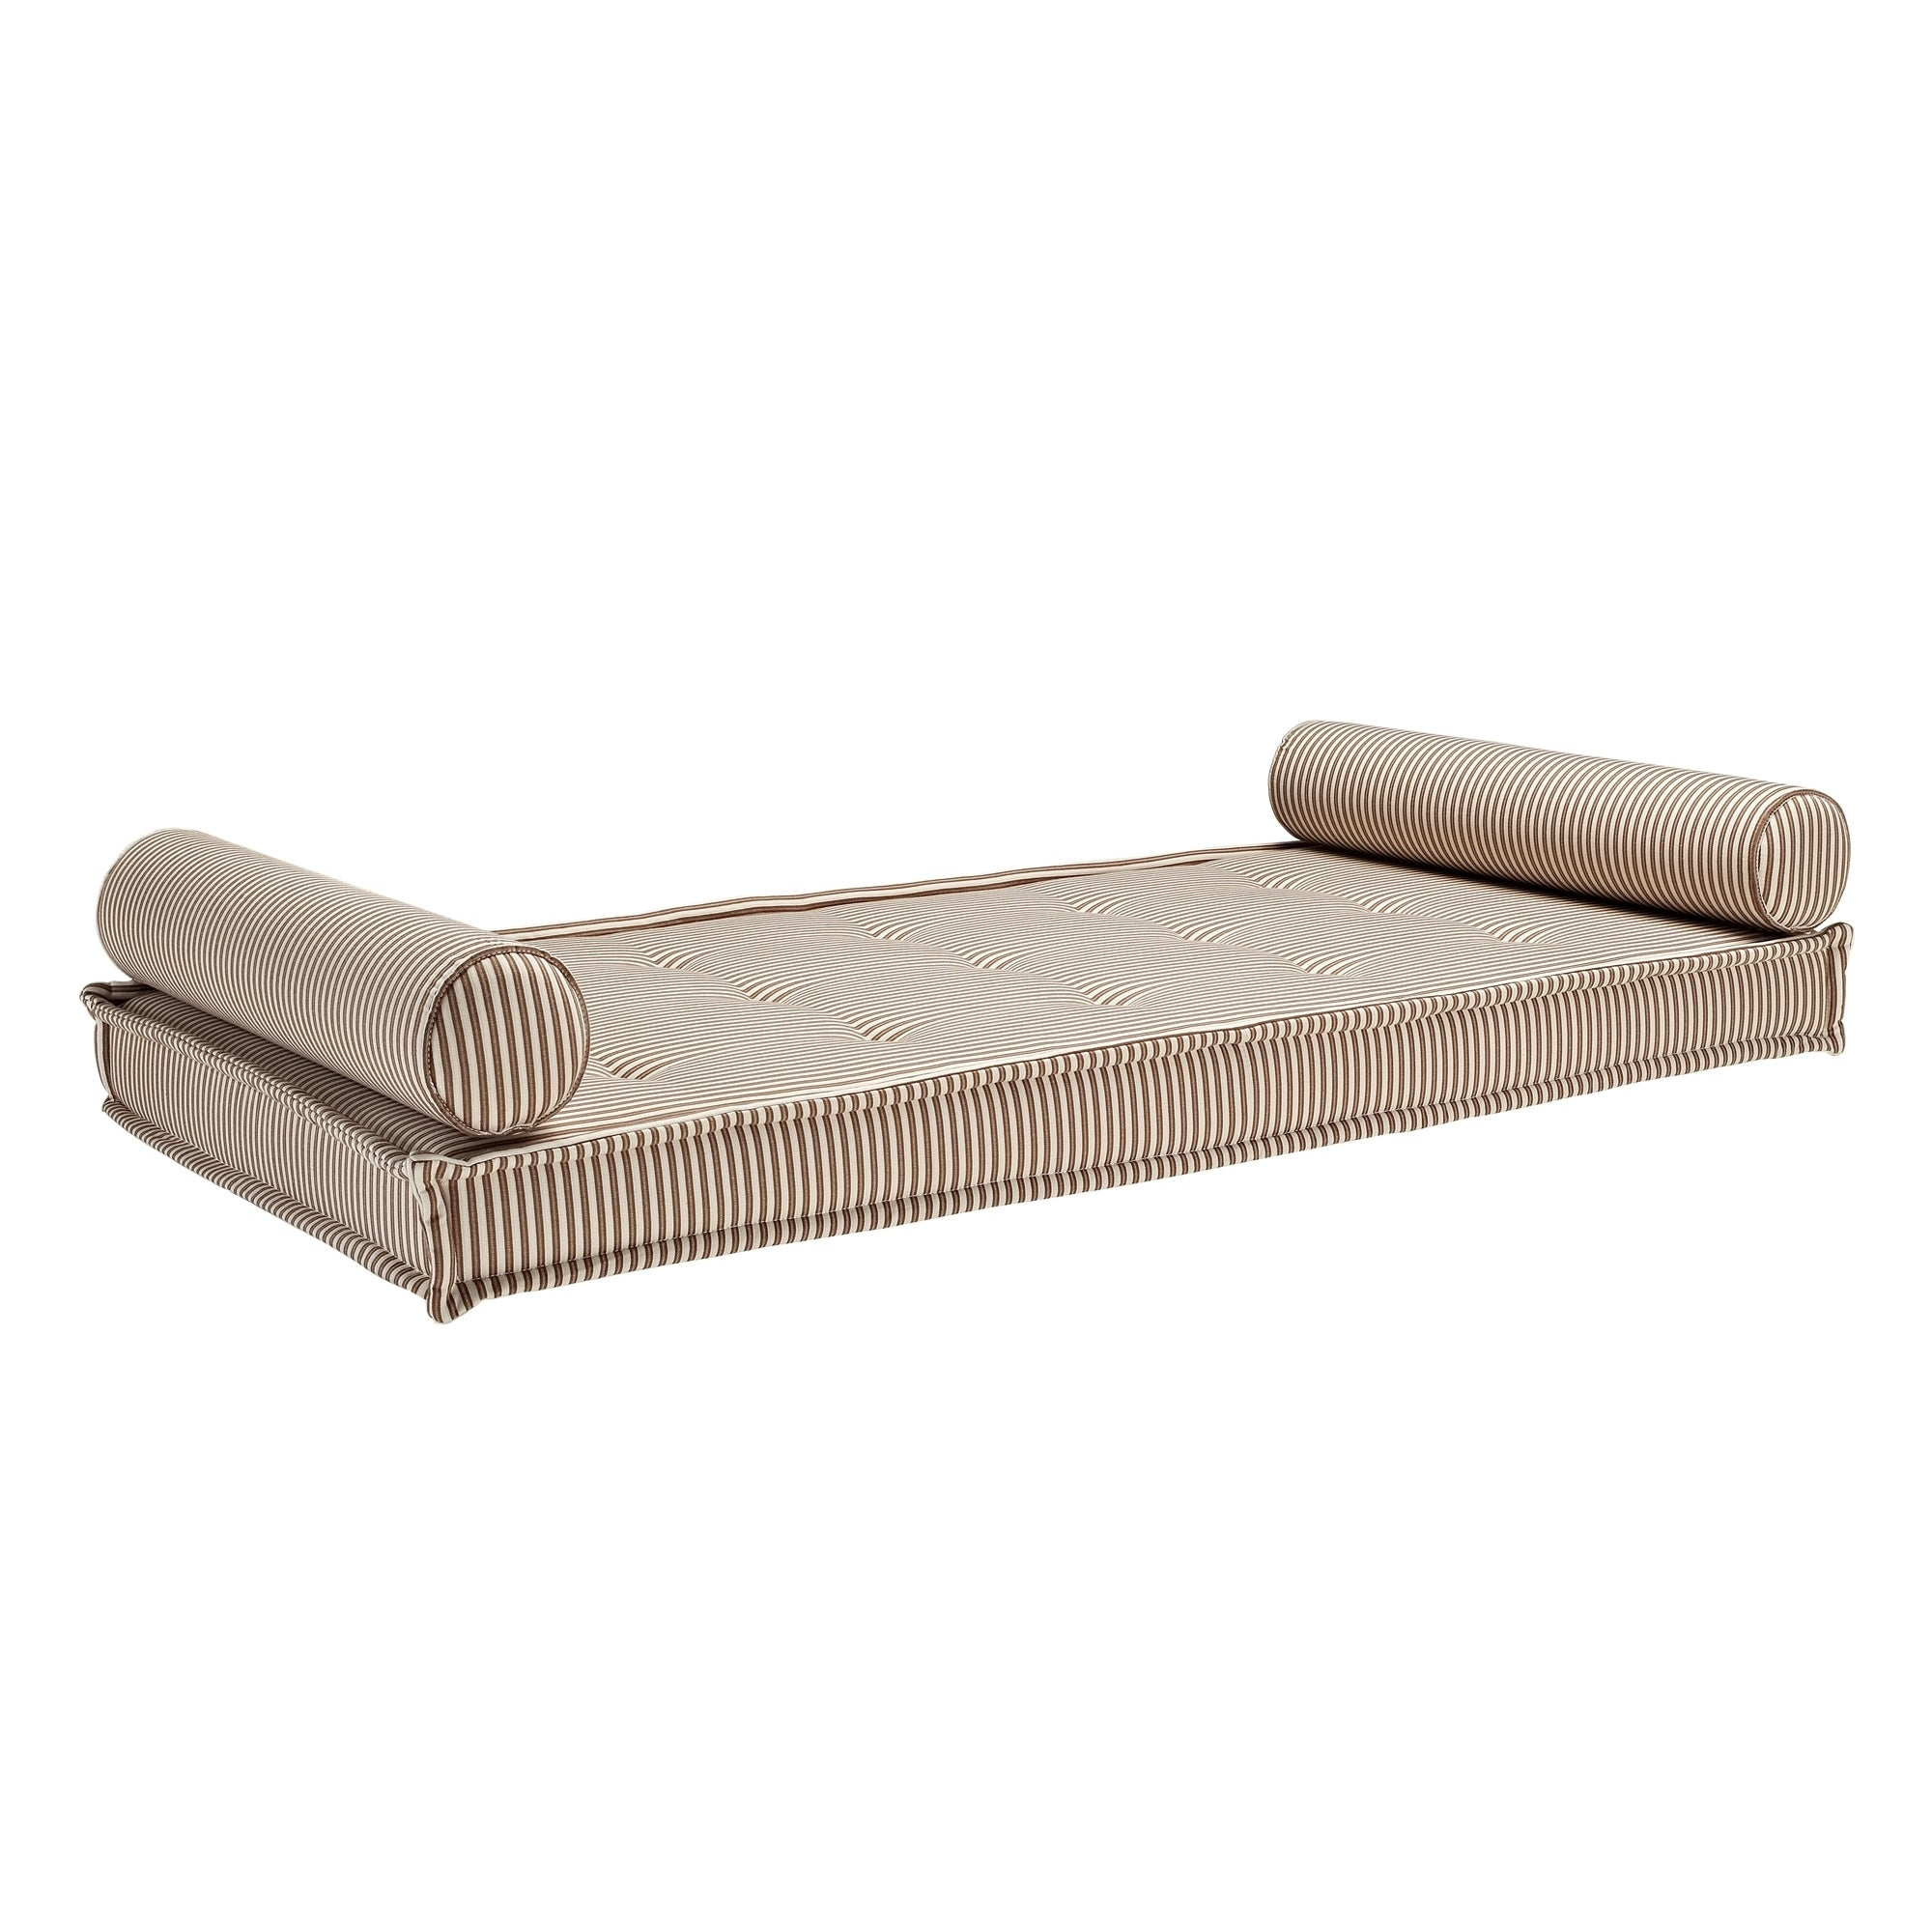 DHP Memory Foam 5 inch Daybed Mattress with Bolster